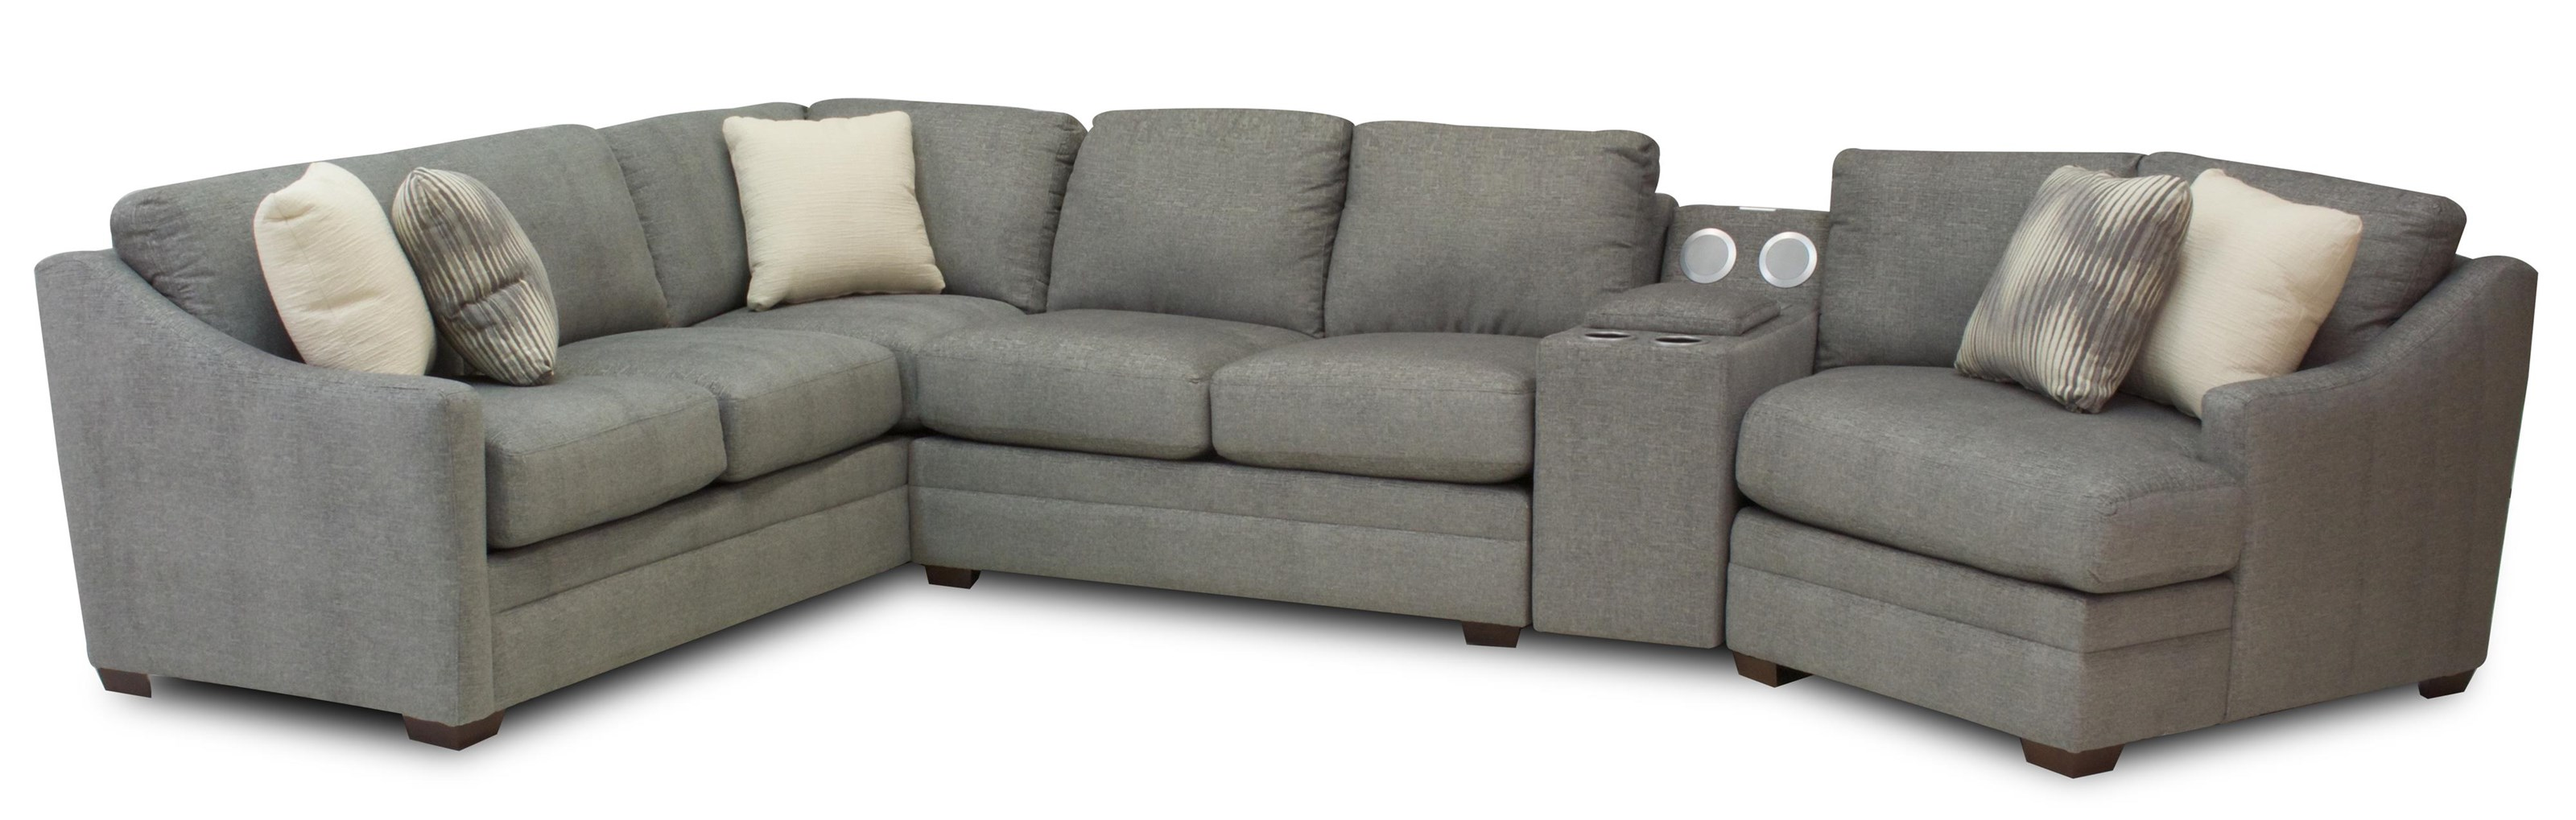 Austin 4-Piece Sectional by Hickory Craft at Ruby Gordon Home